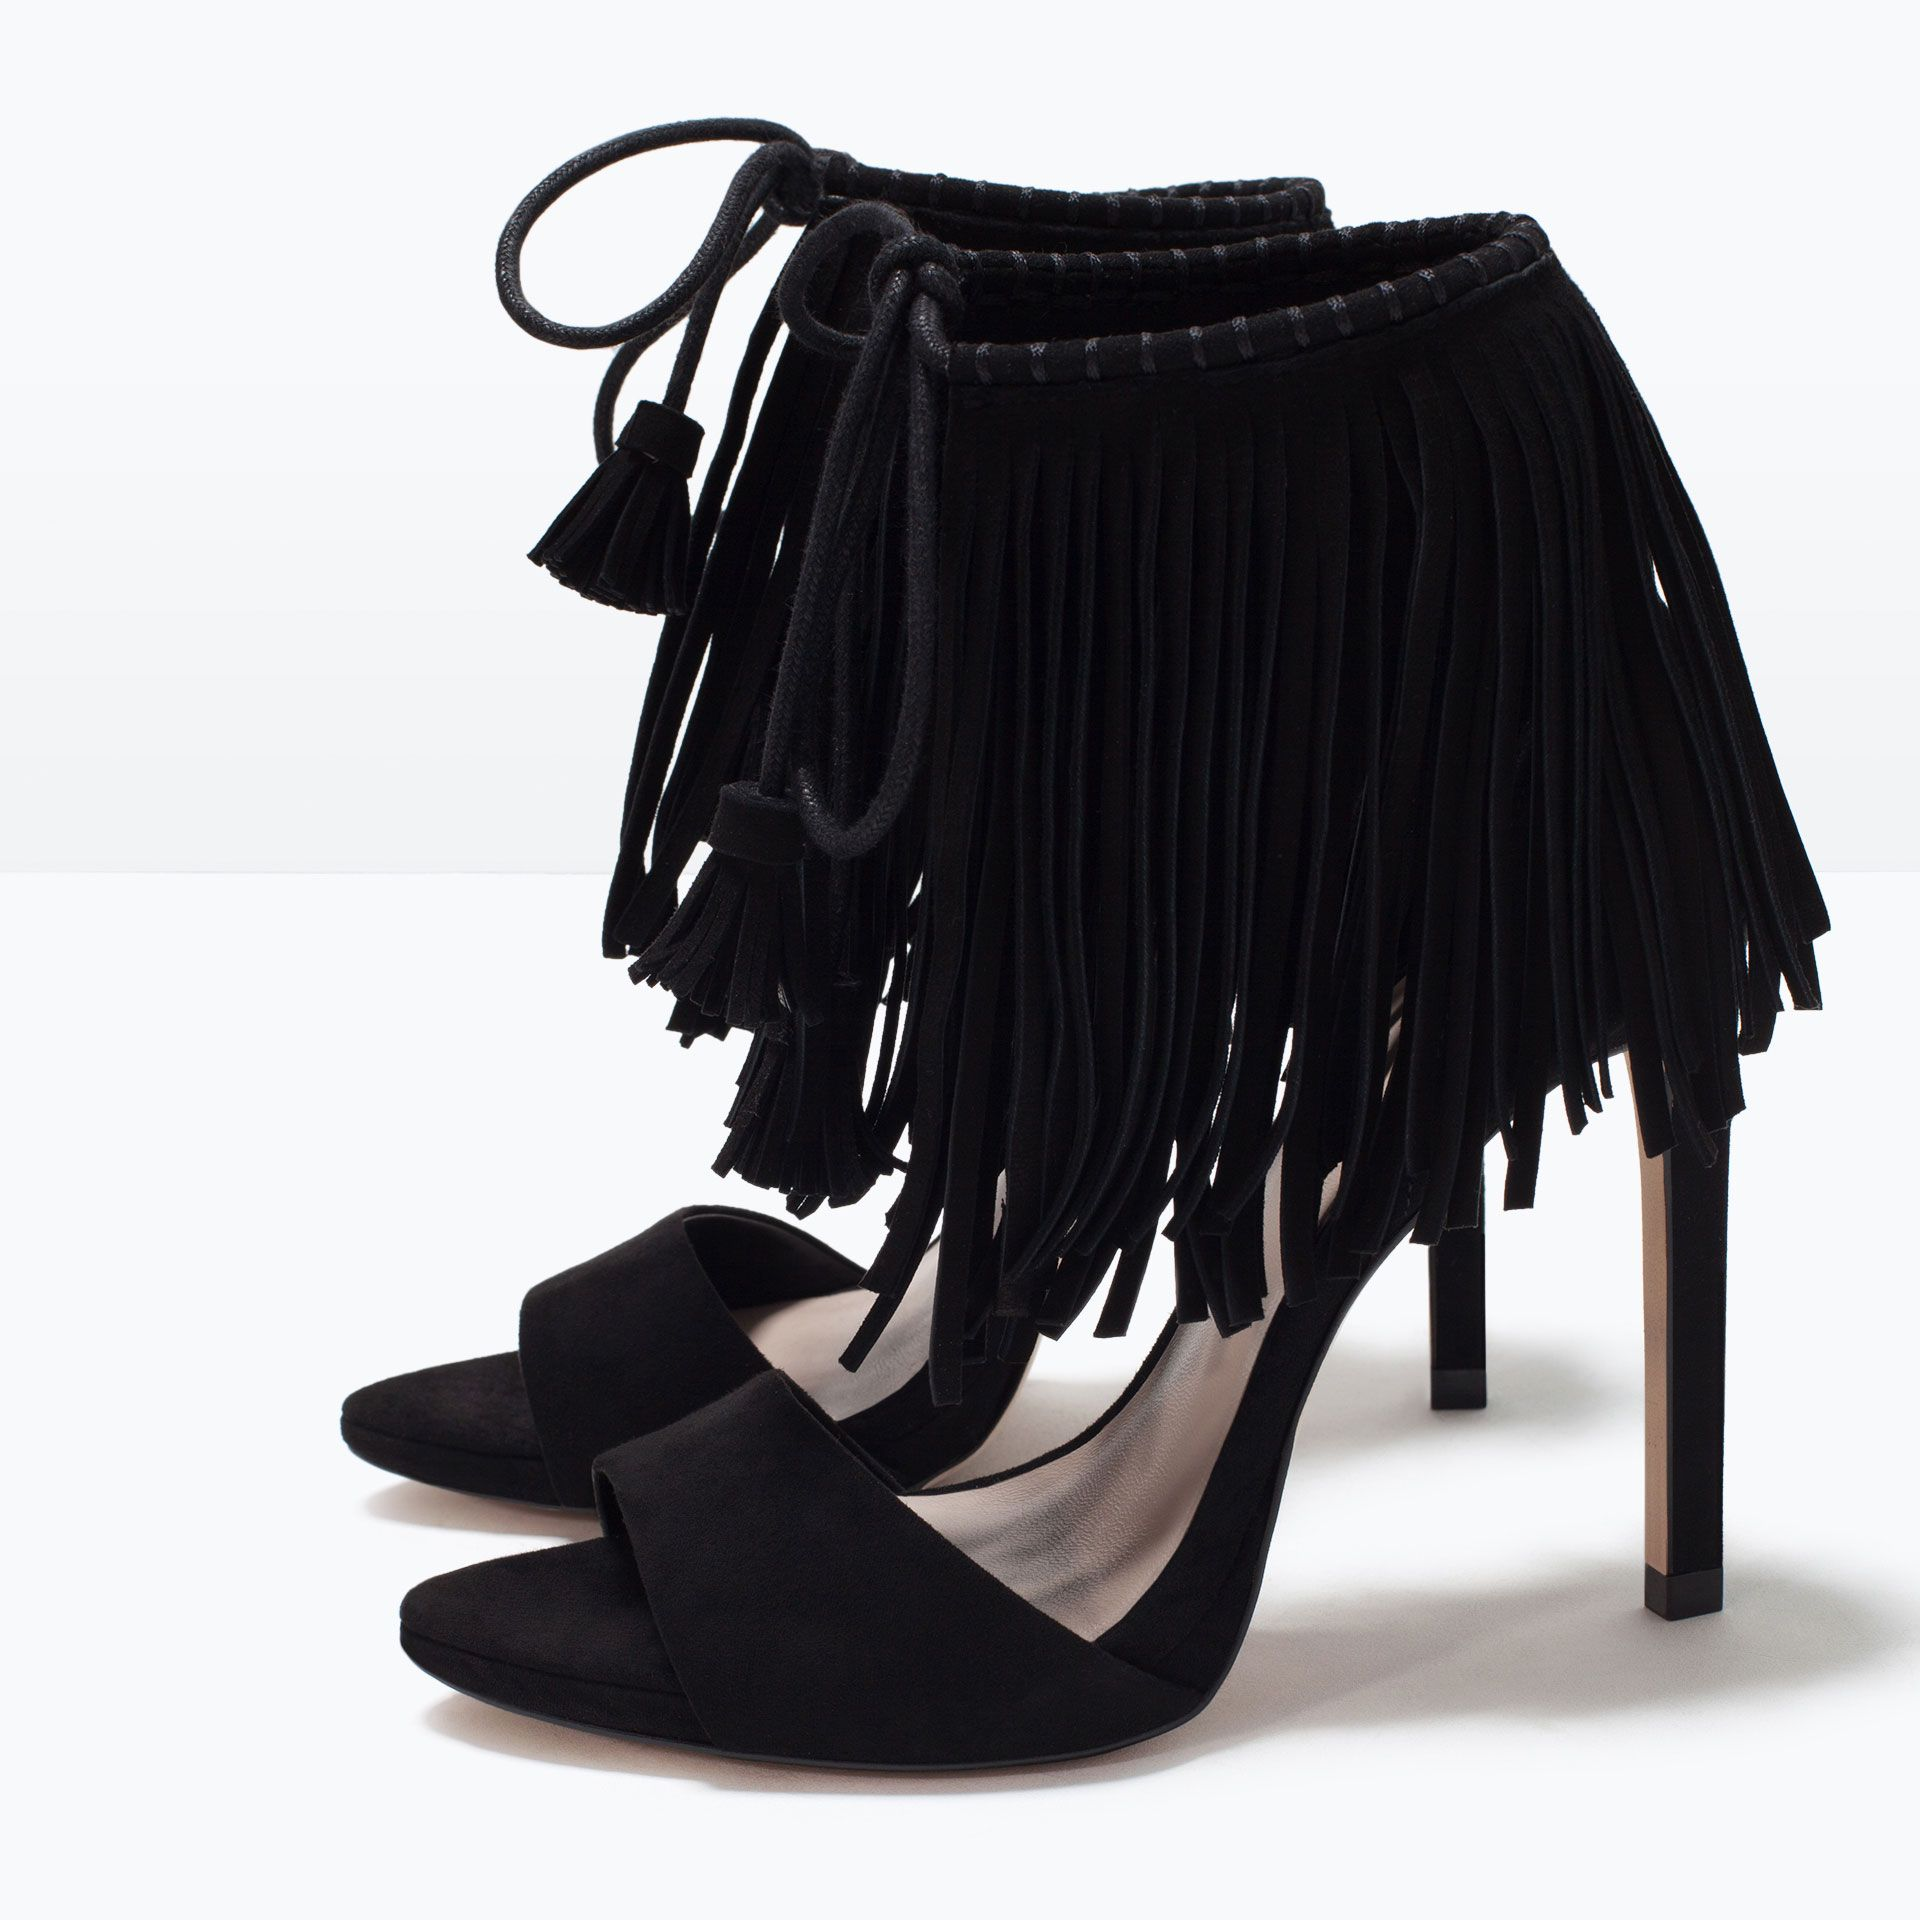 91c007dd8bf FRINGED HIGH HEEL SANDALS-Shoes-Woman-SHOES   BAGS